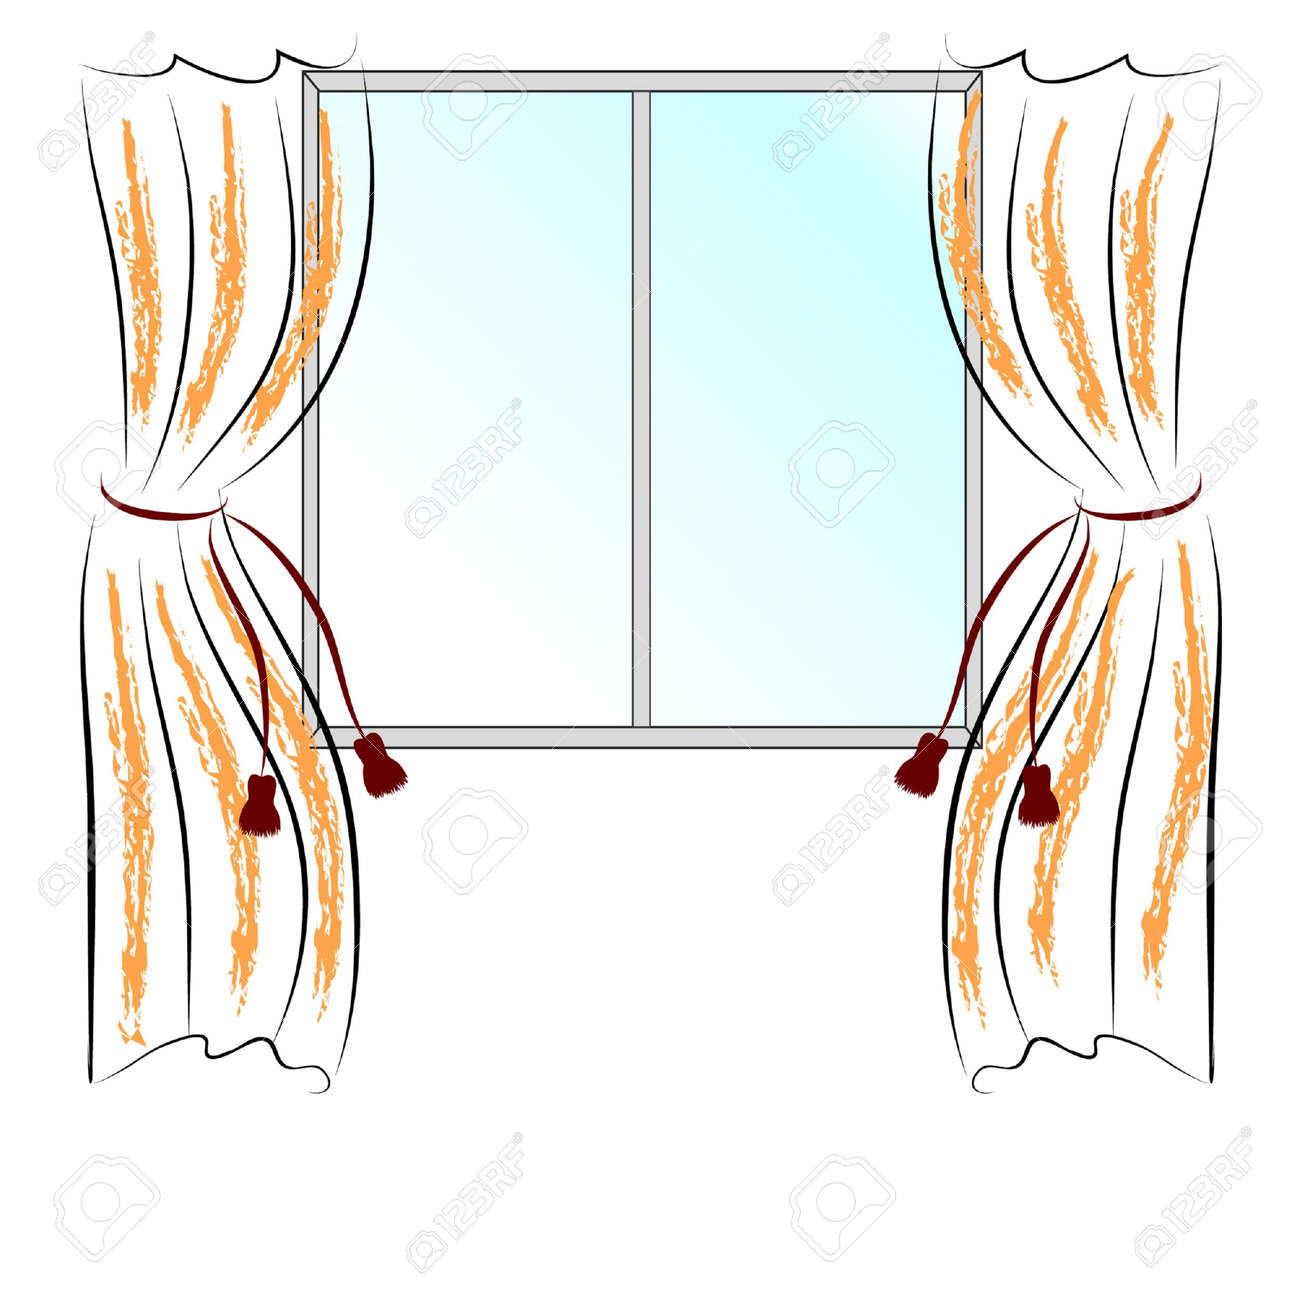 Simple Drawing Window And Two Curtains. Royalty Free Cliparts ... for Window With Curtains Drawing  67qdu